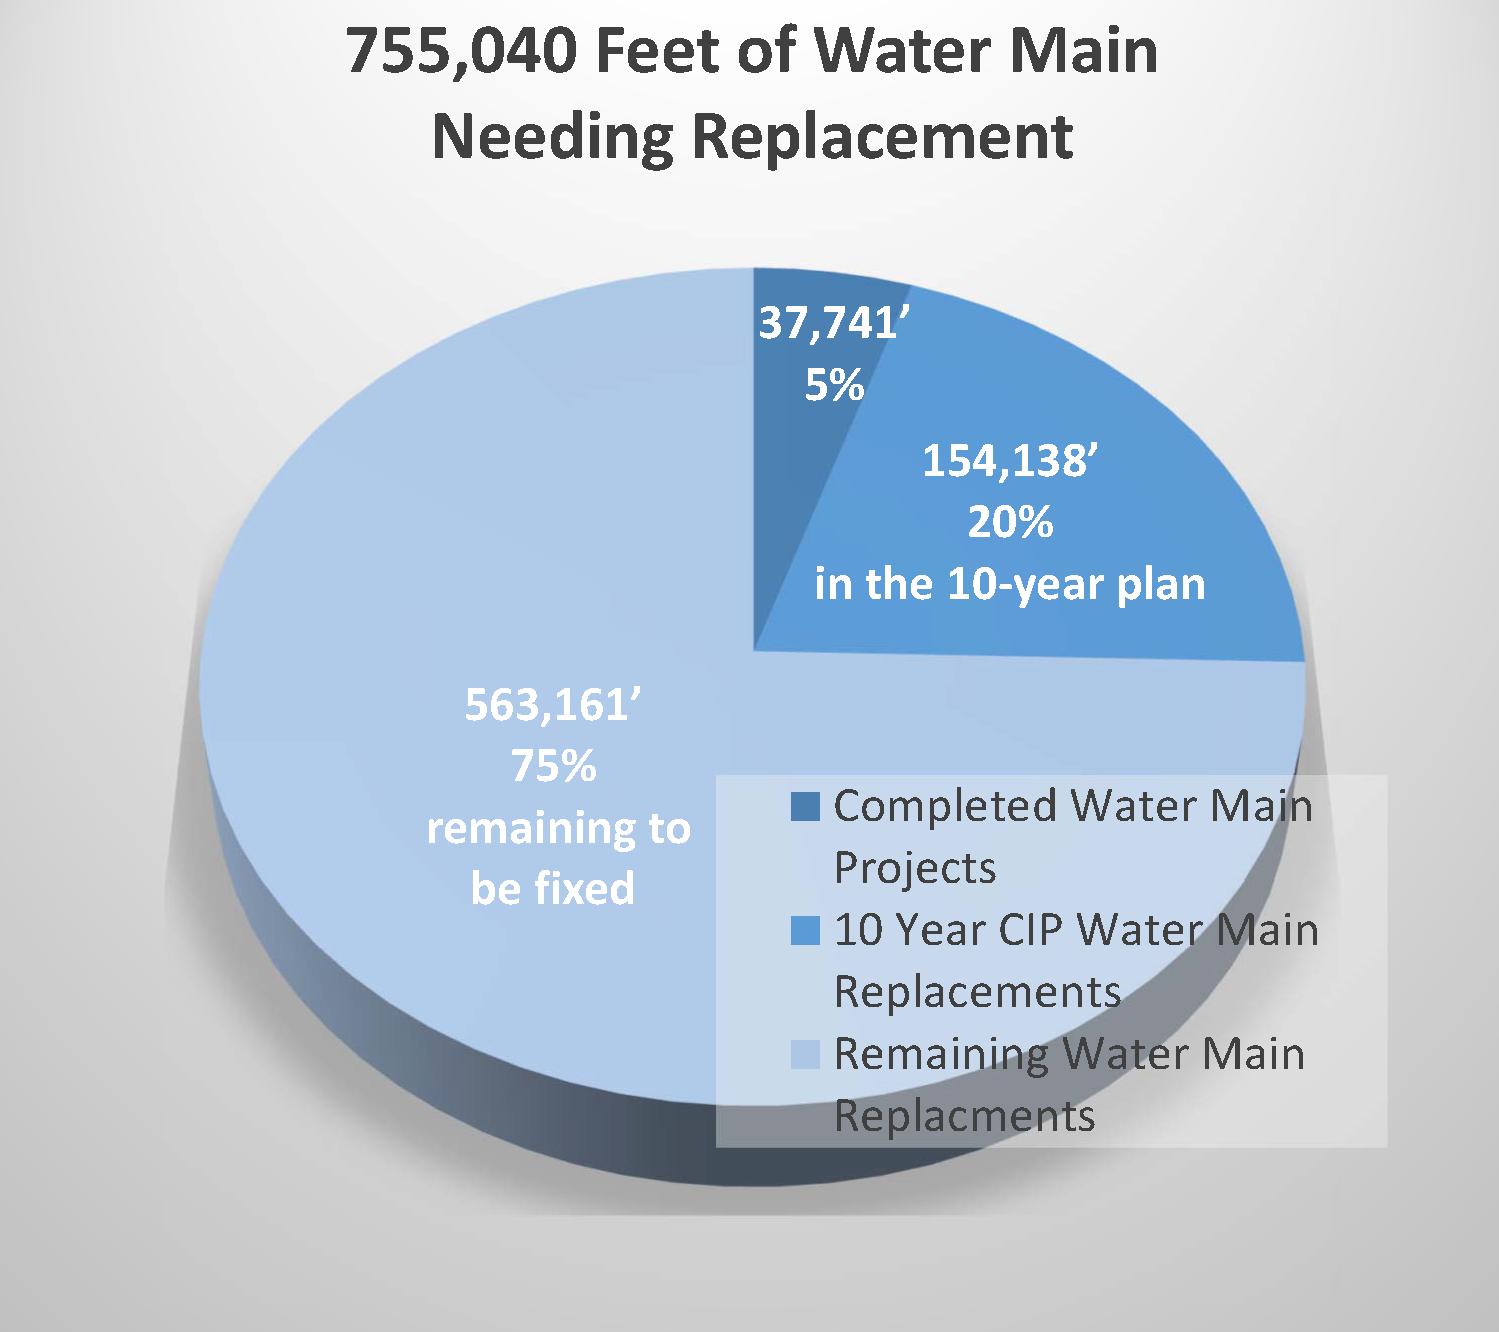 Water Main Needed Replacement Pie Chart